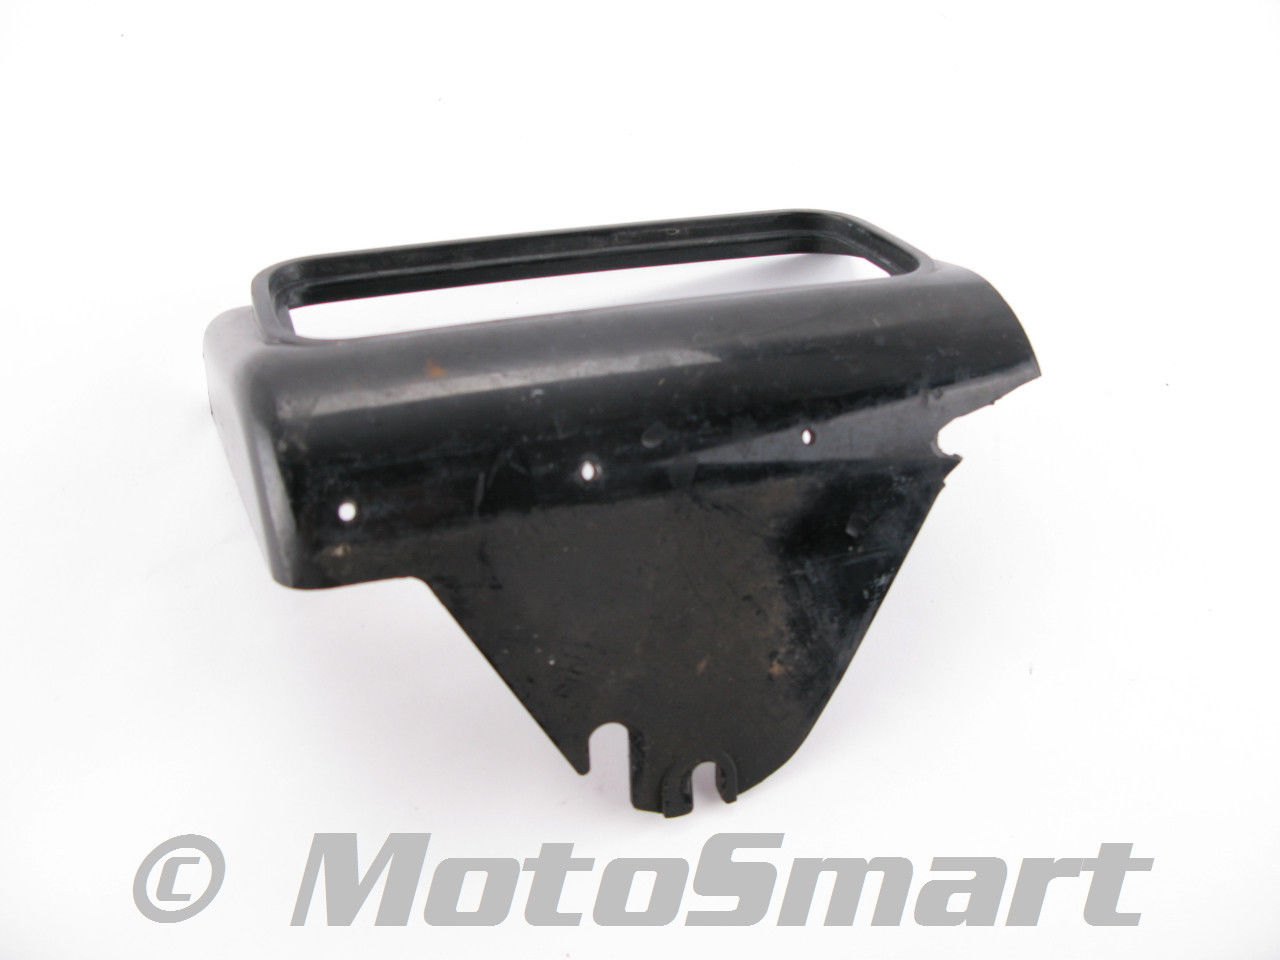 1981-Honda-GL1100-GL-1100-Right-Hard-Saddlebag-Bag-Case-Fair-Used-101582-271149007499-9